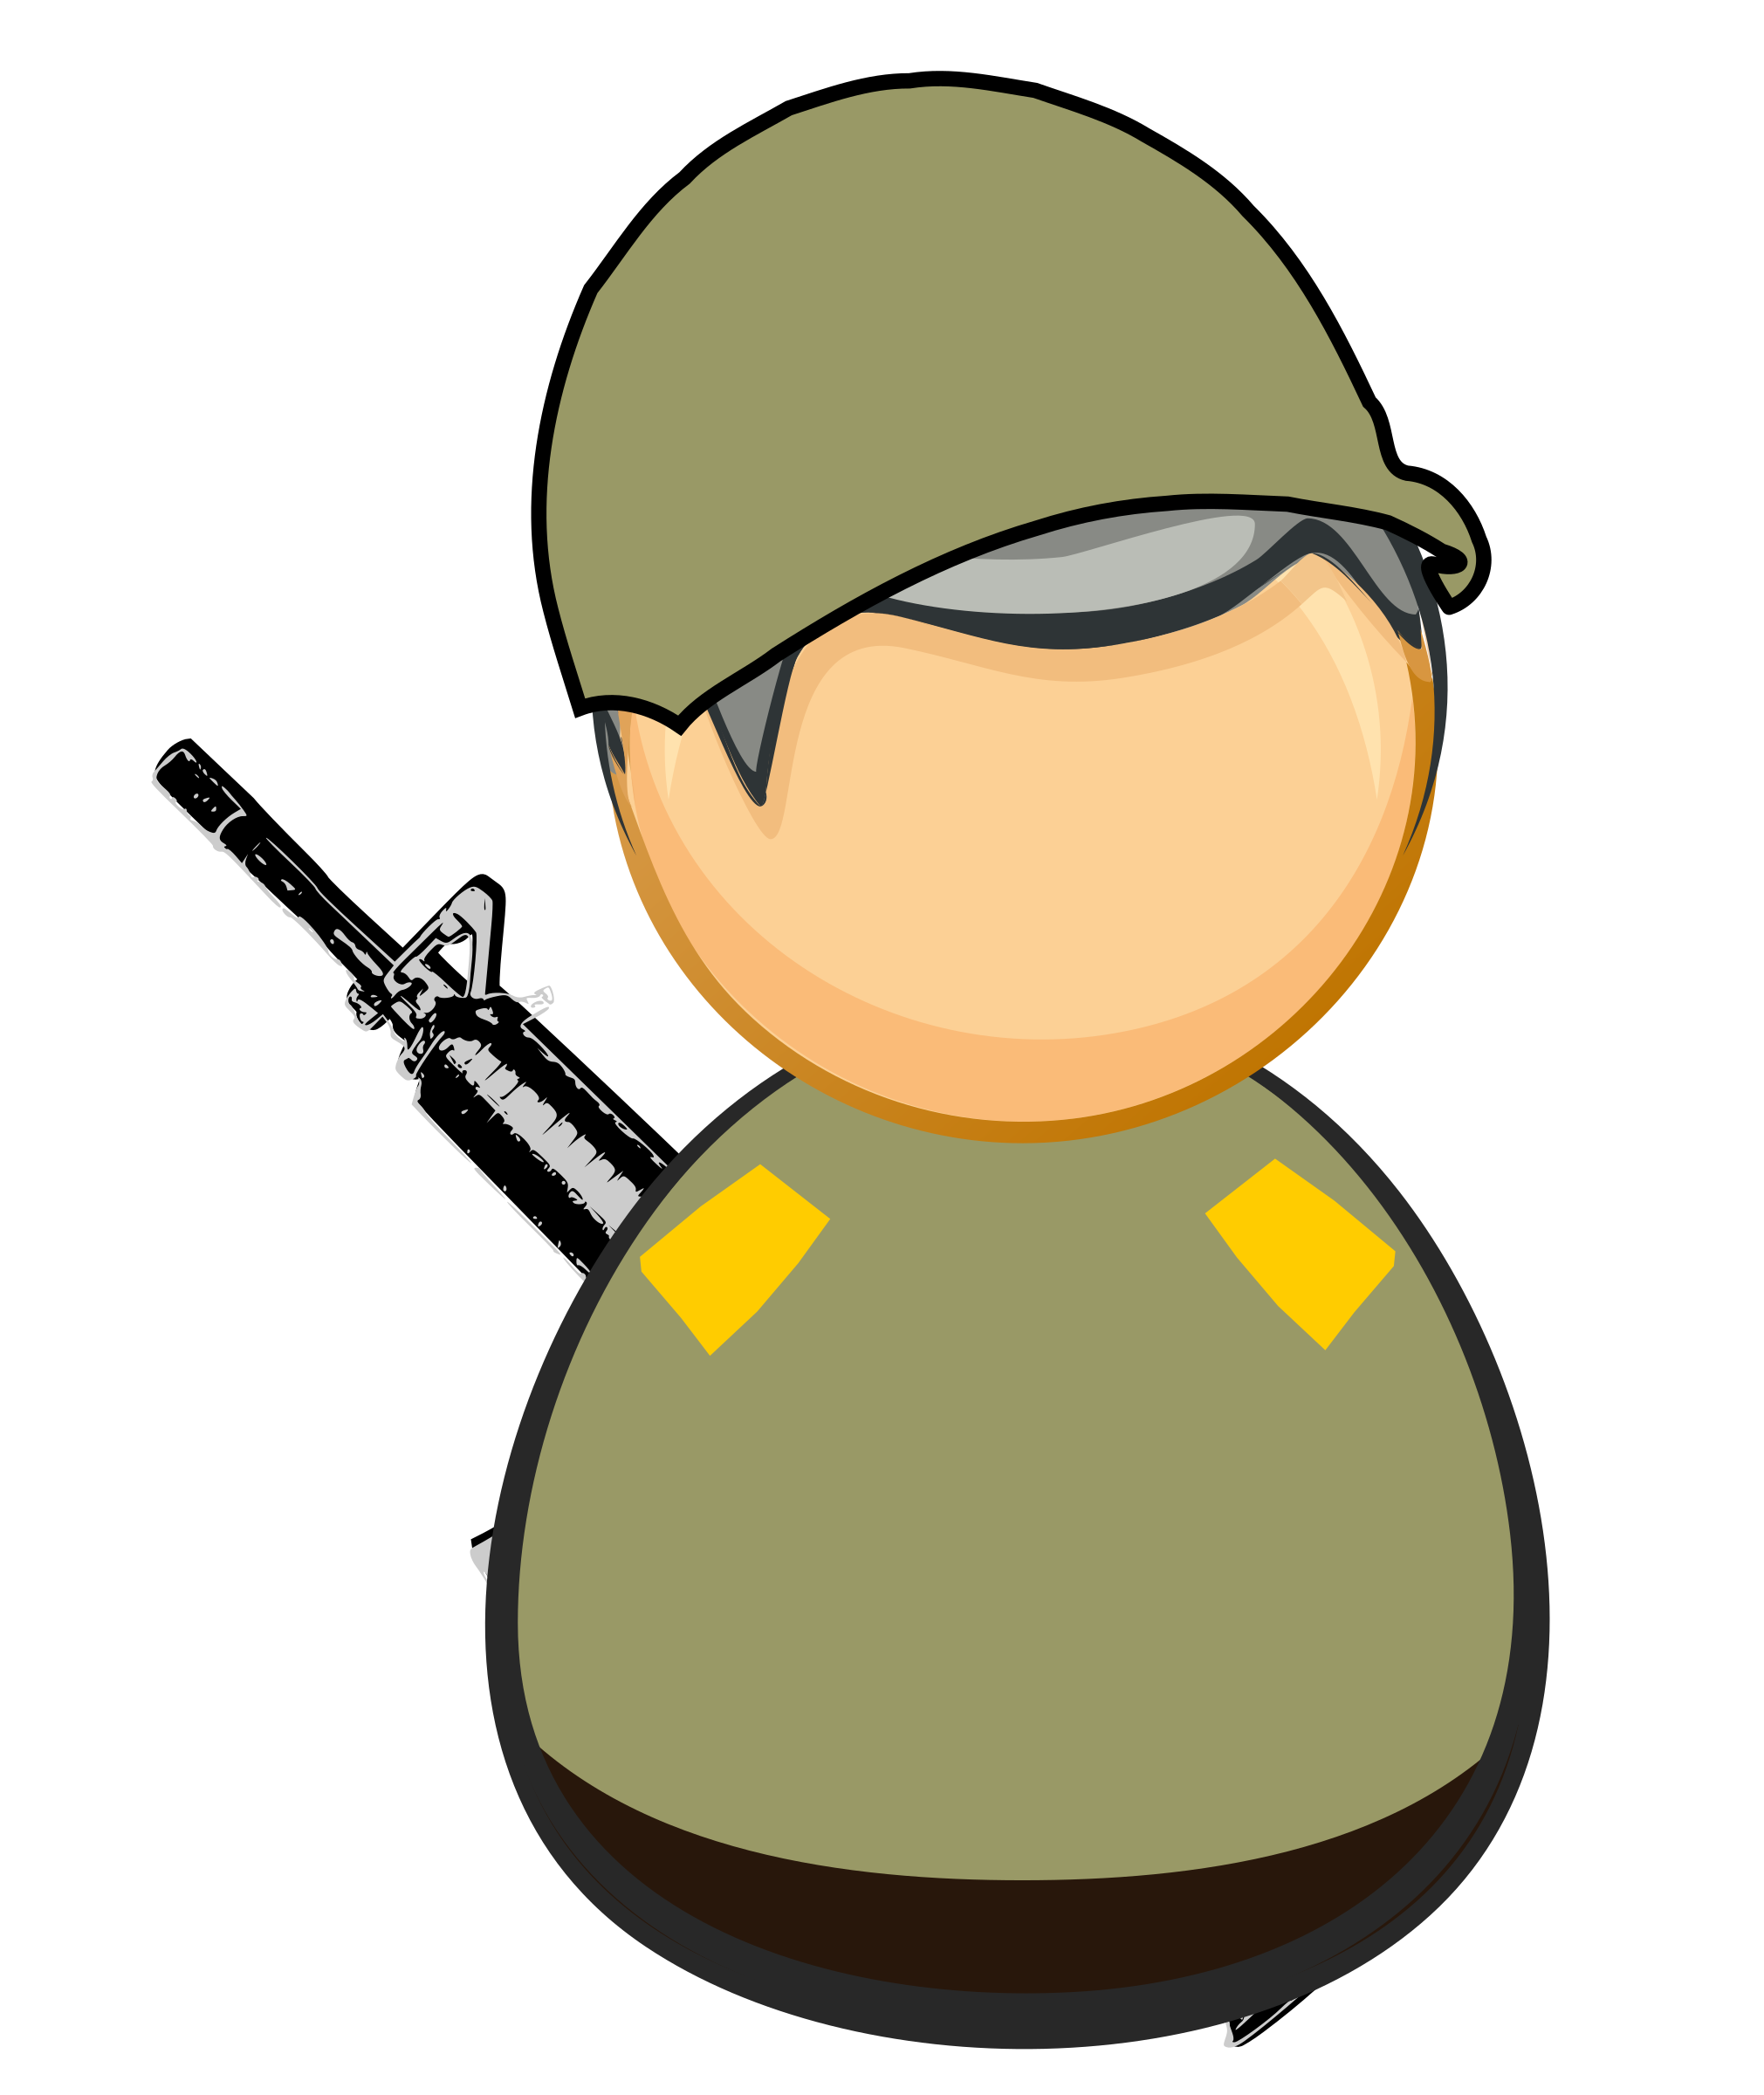 First responder icon soldier. Military clipart army doctor